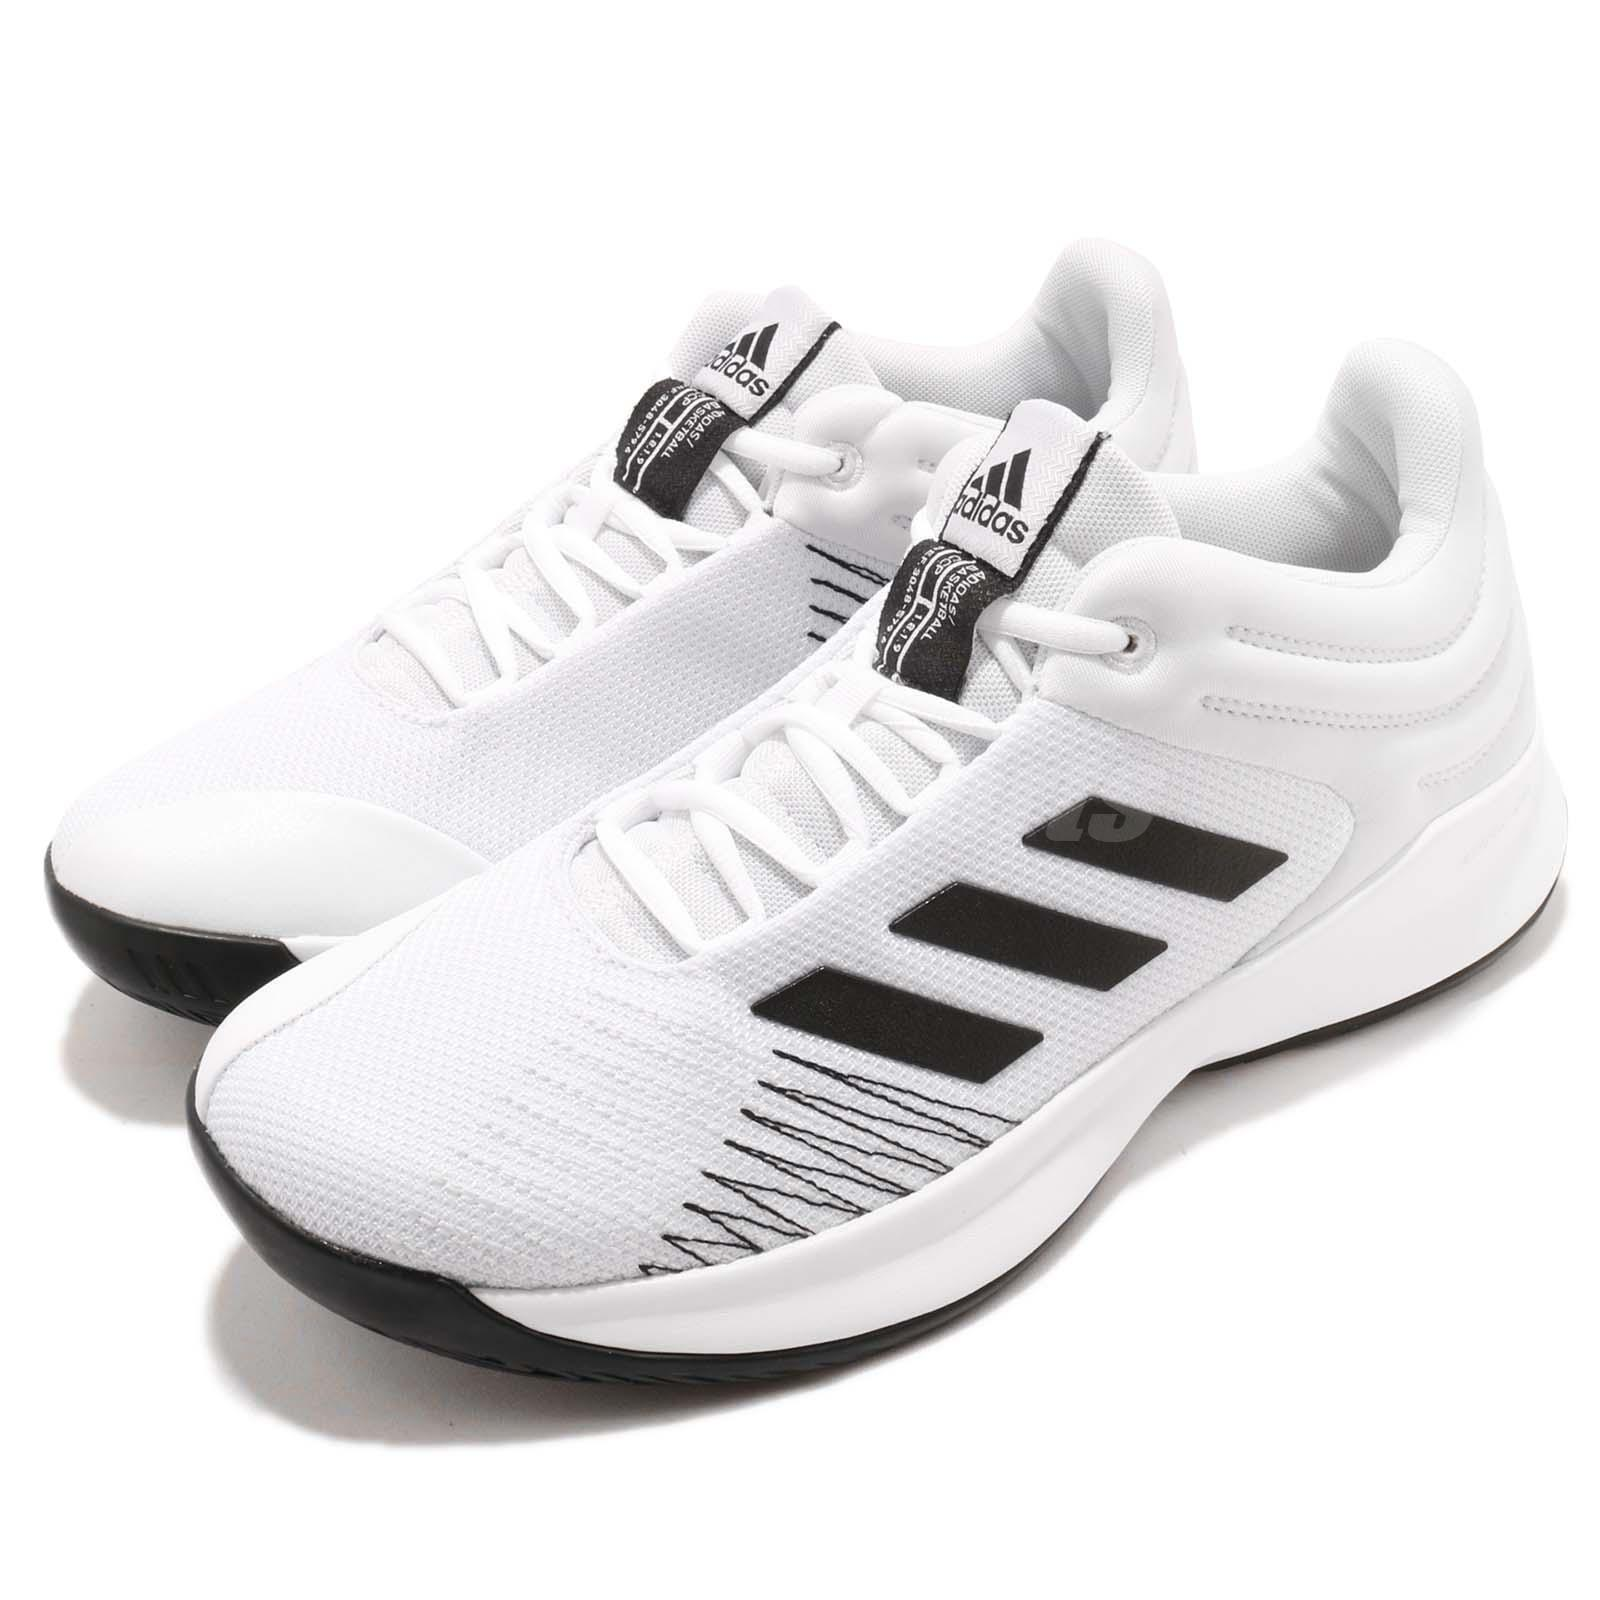 97d66c8a7260 Details about adidas Pro Spark Low 2018 White Black Men Basketball Shoes  Sneakers AP9838